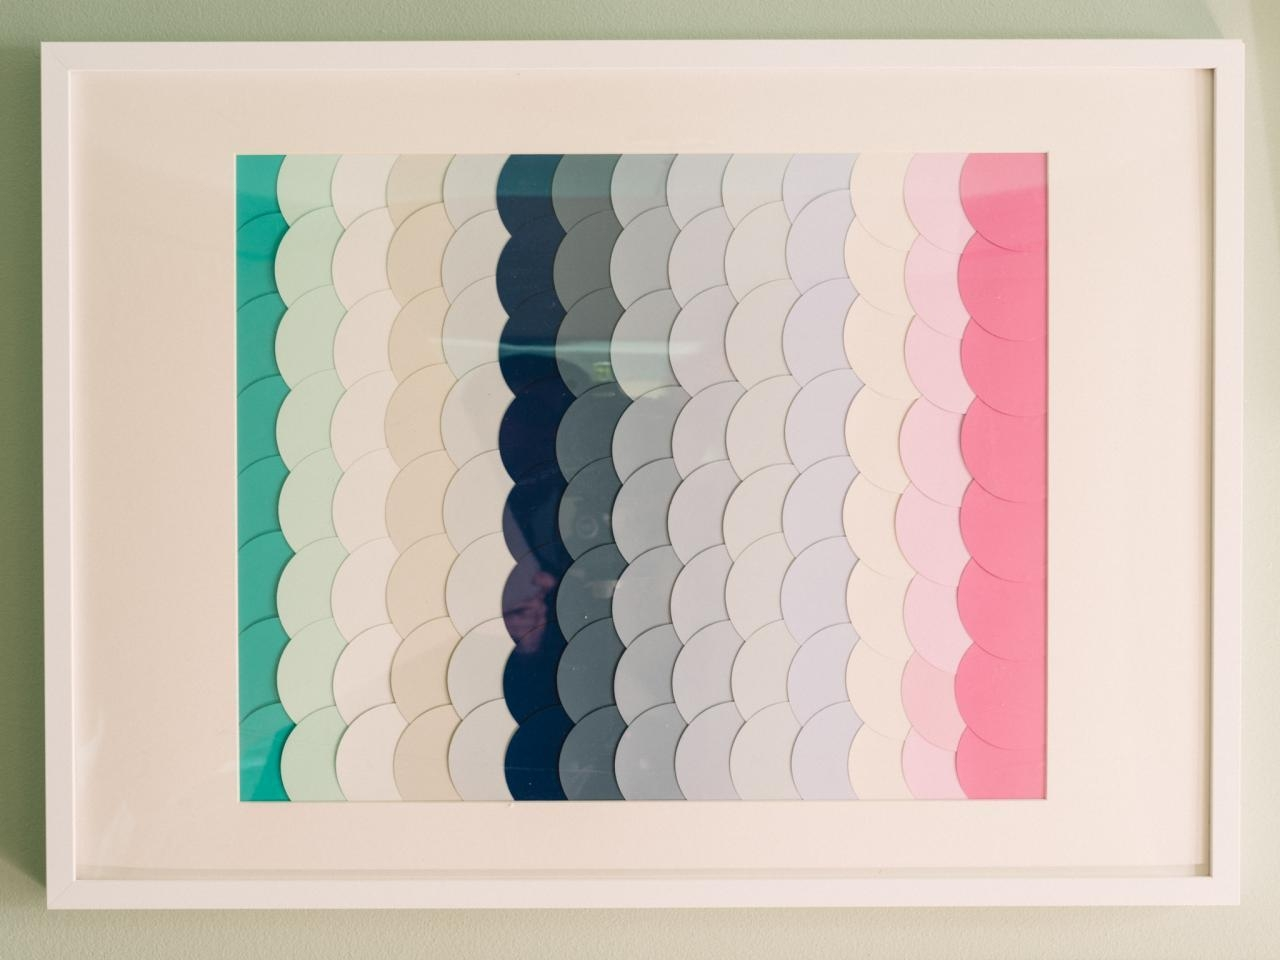 18 Genius Wall Decor Ideas | Hgtv's Decorating & Design Blog | Hgtv With Regard To Paint Swatch Wall Art (Image 1 of 20)